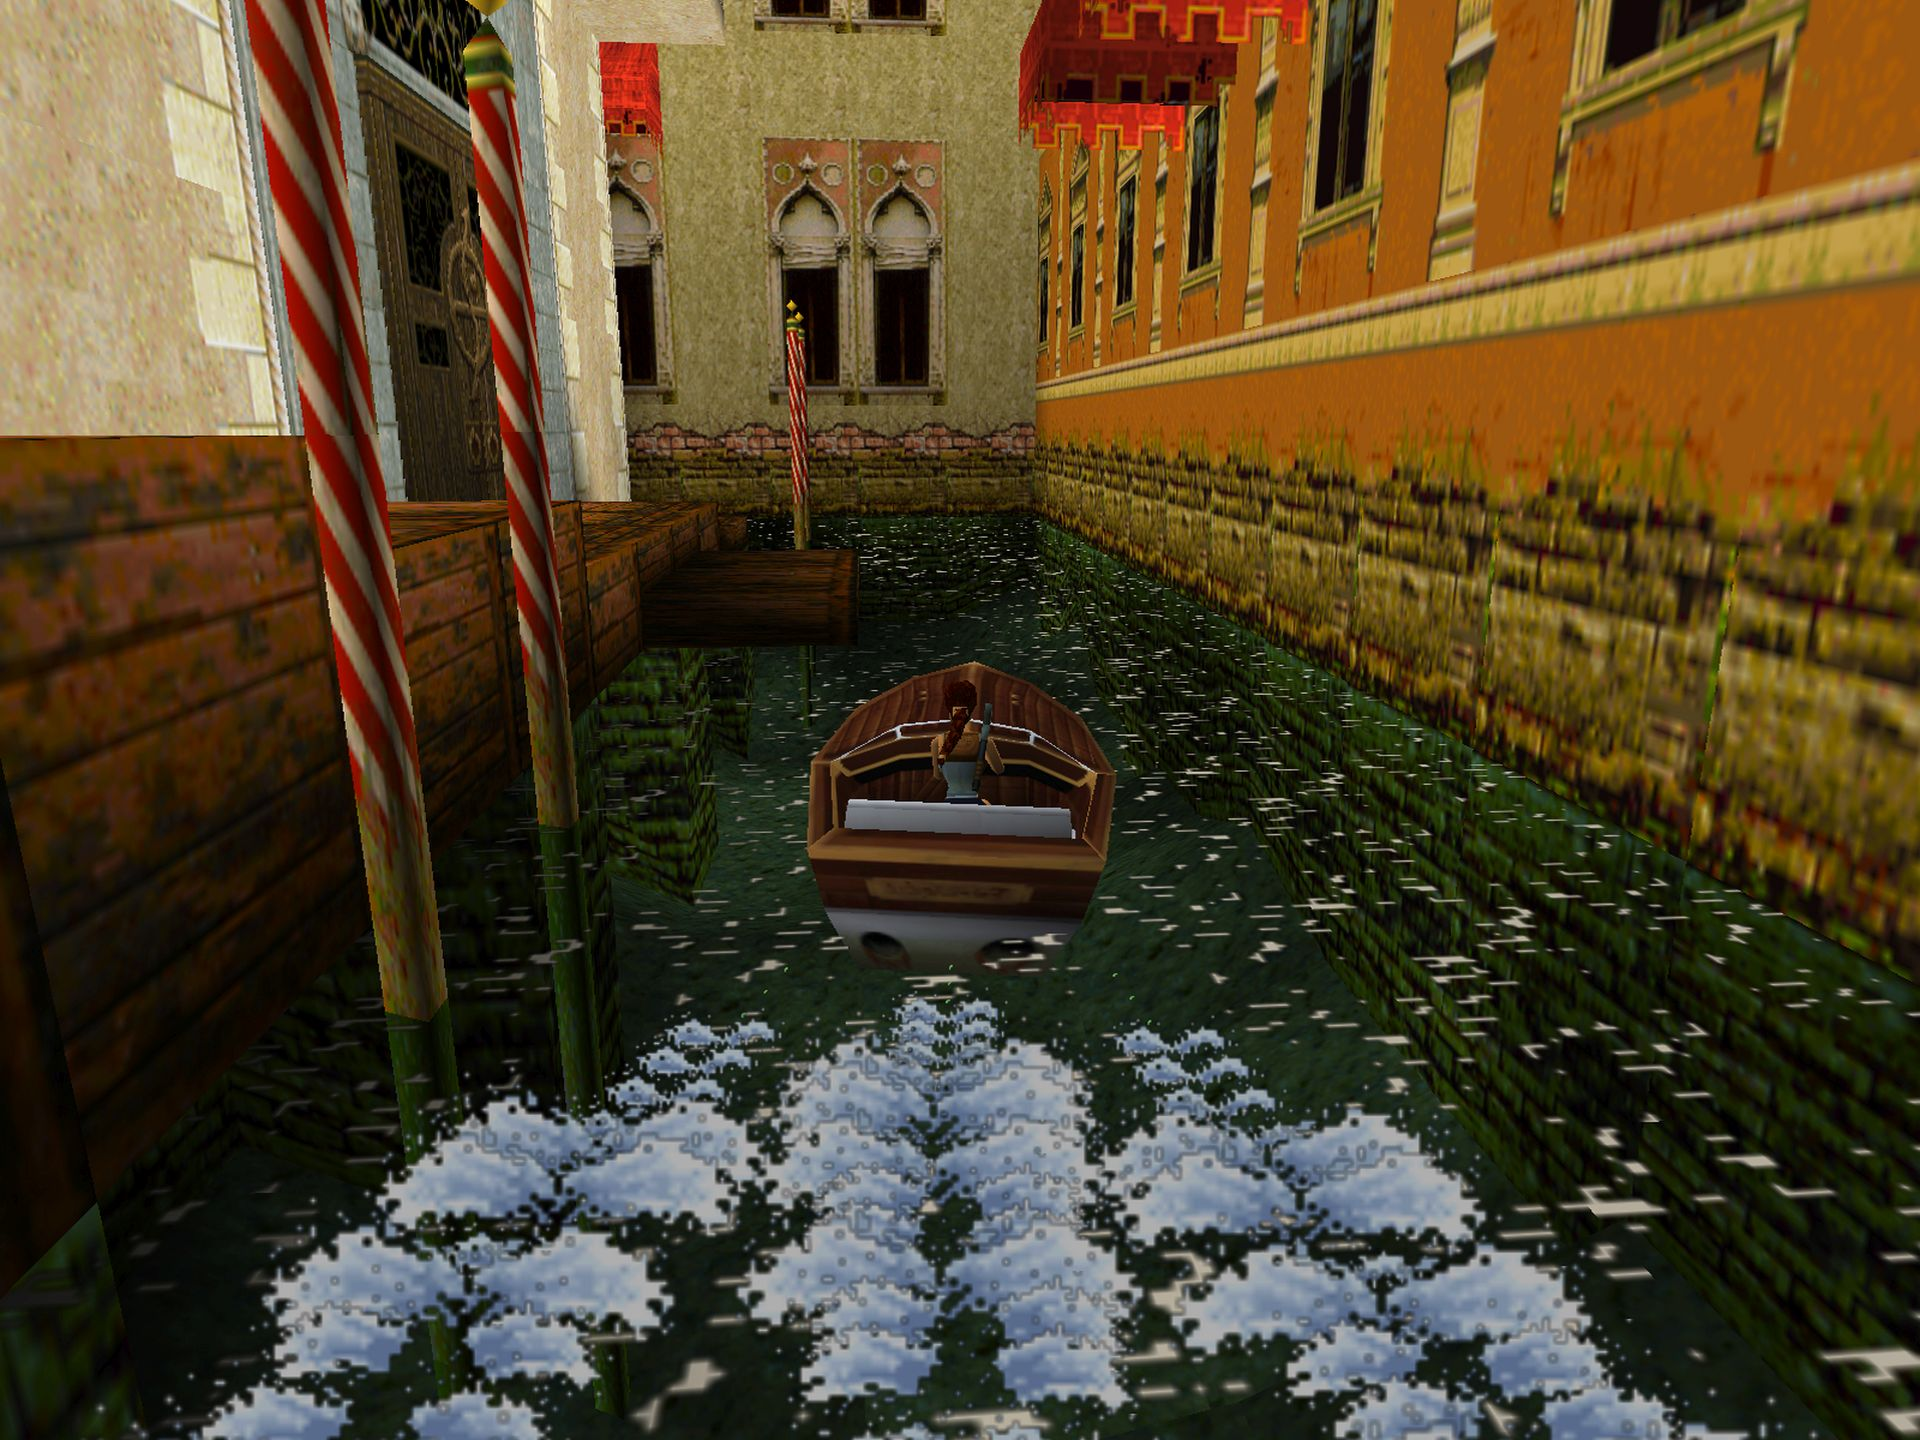 Tomb Raider II's environments were more open, and could be explored using vehicles (image courtesy of Crystal Dynamics).